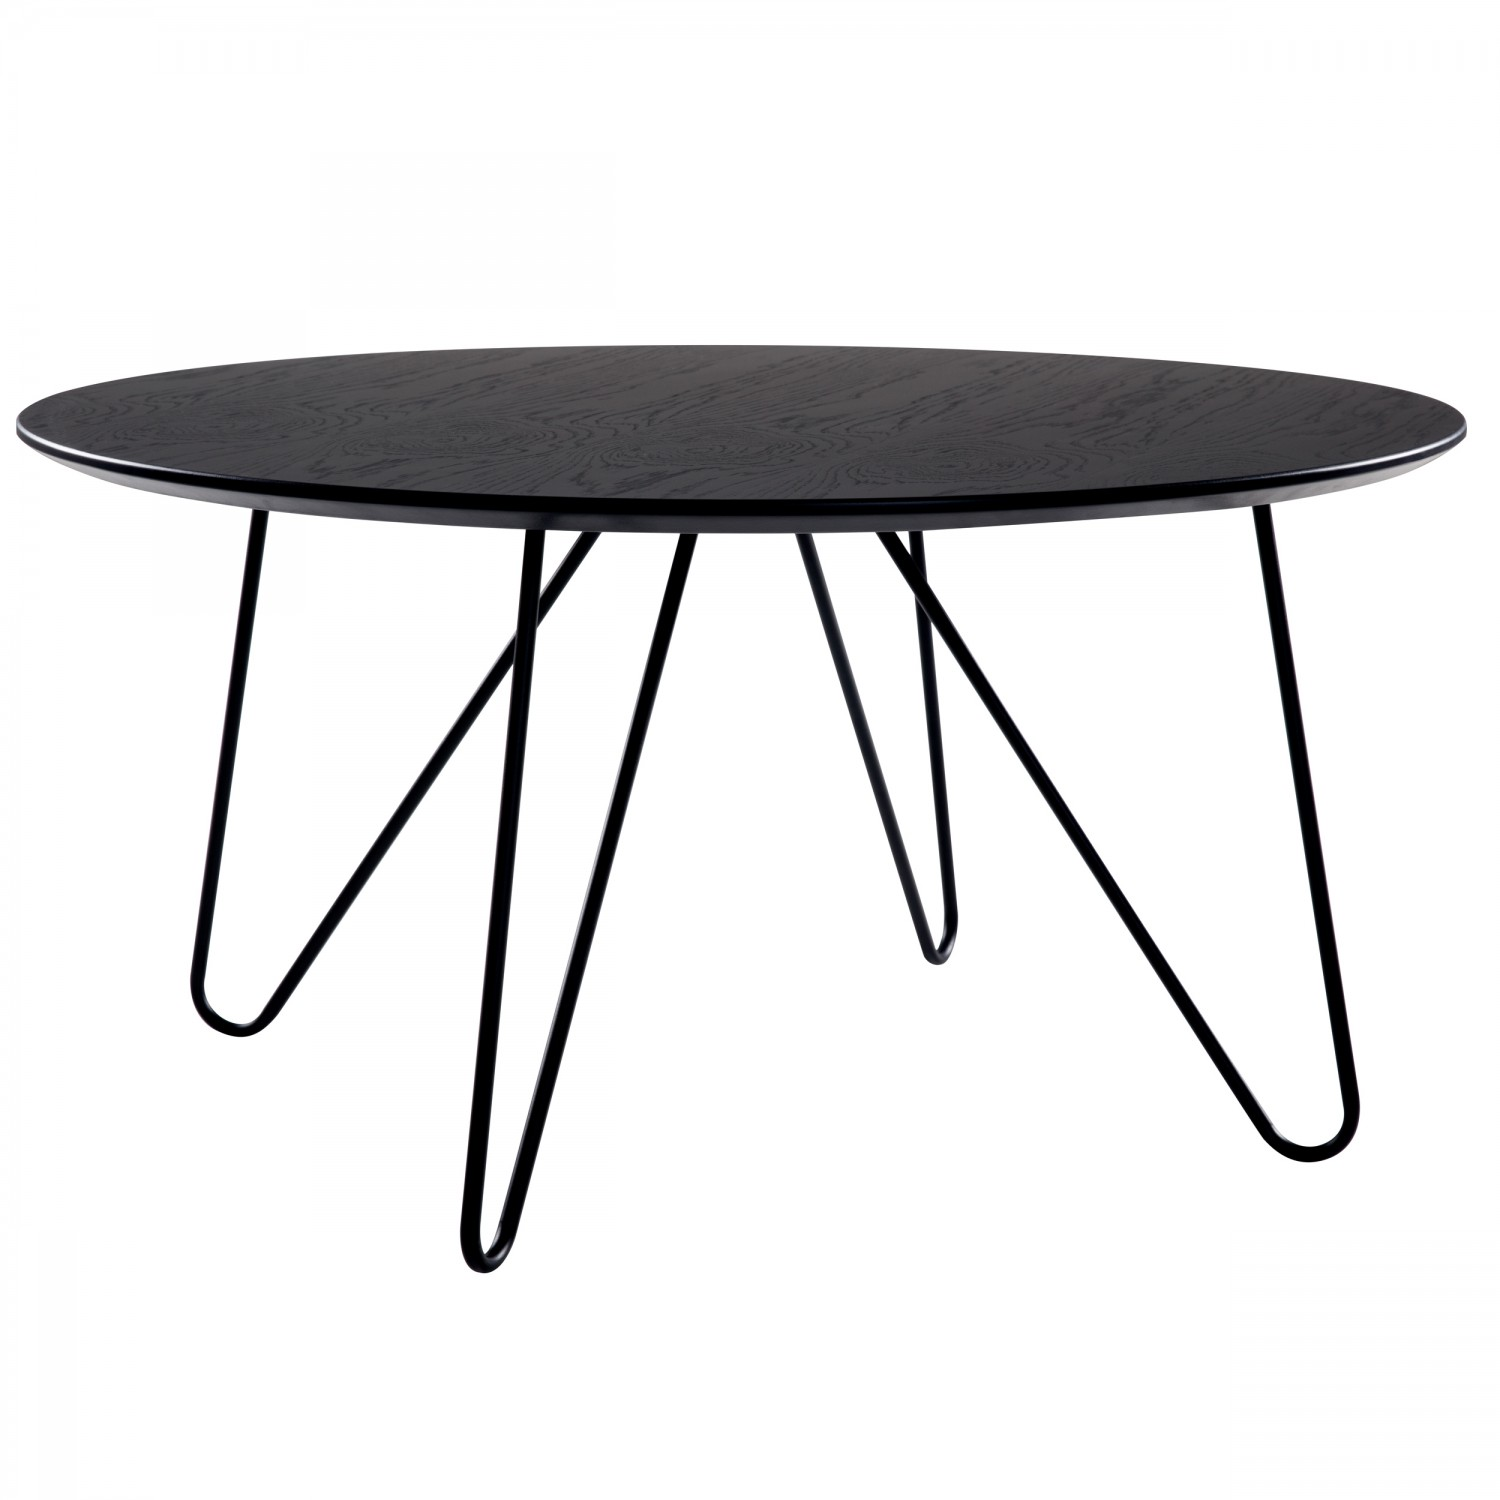 Tables Basses Rondes De Salon Table Basse Ronde Noire Vela Ø80 Cm Tables Basses Salon Koya